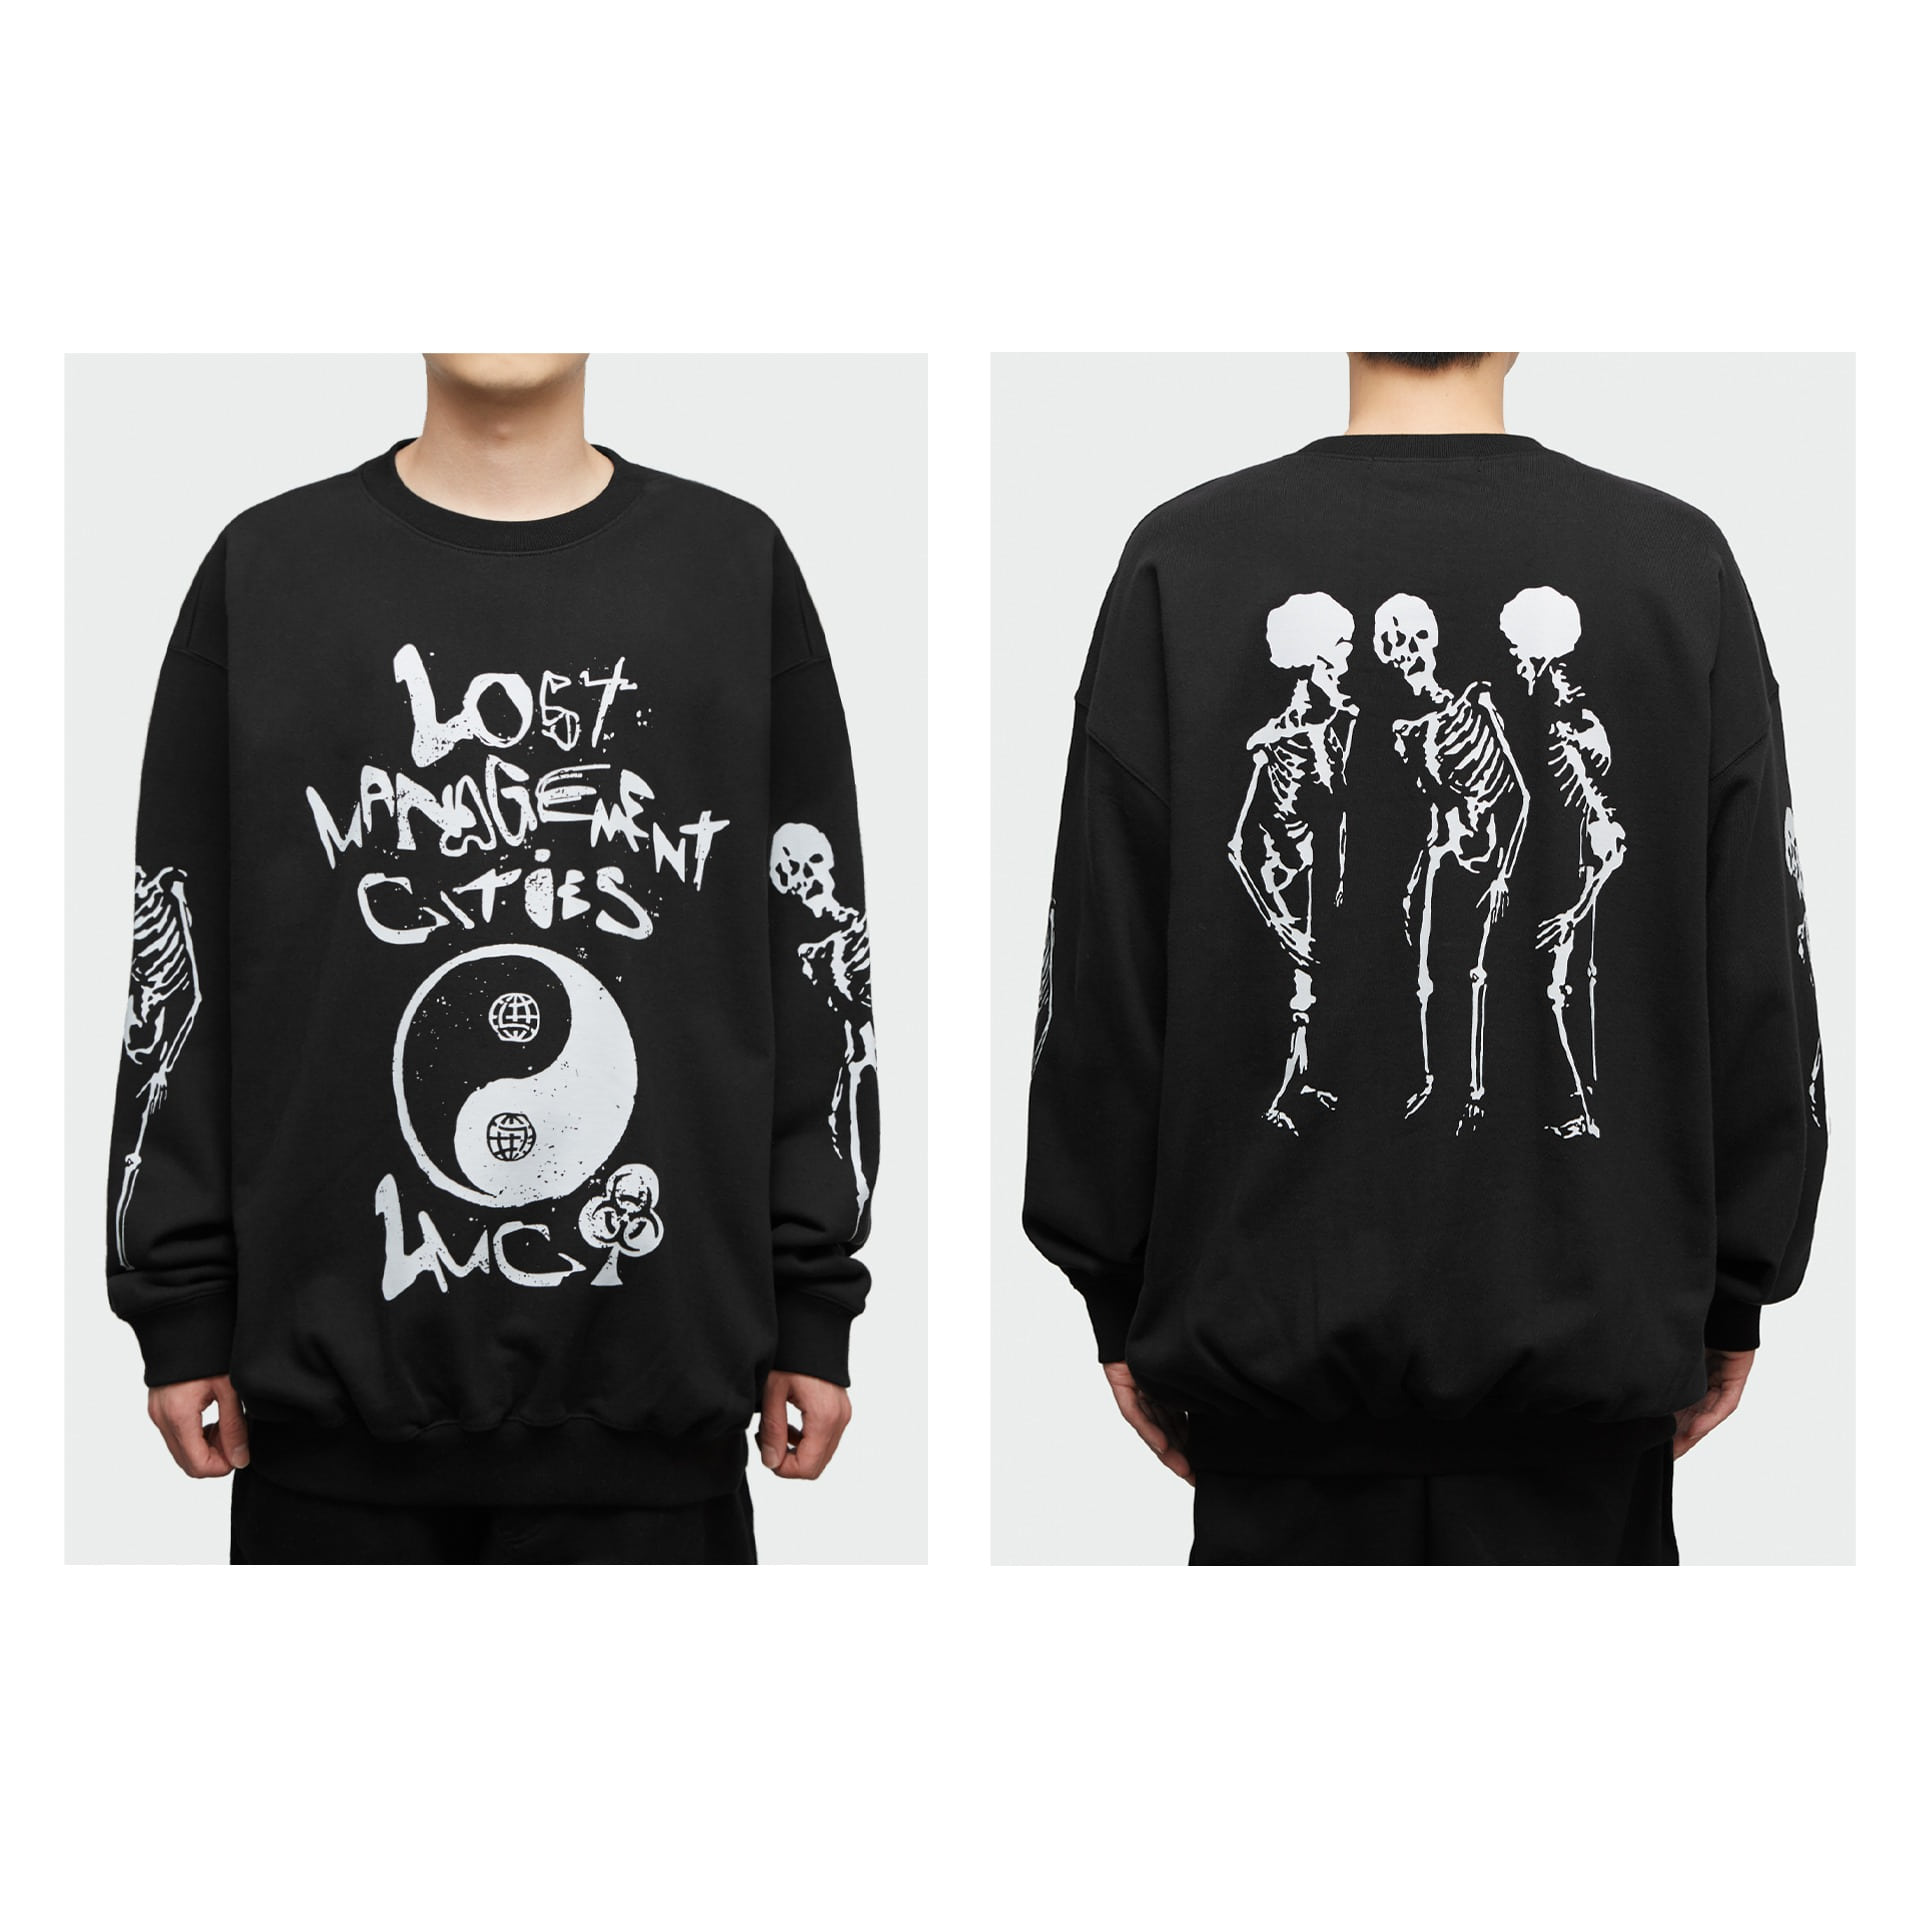 LMC BIOHAZARD OVERSIZED SWEATSHIRT black